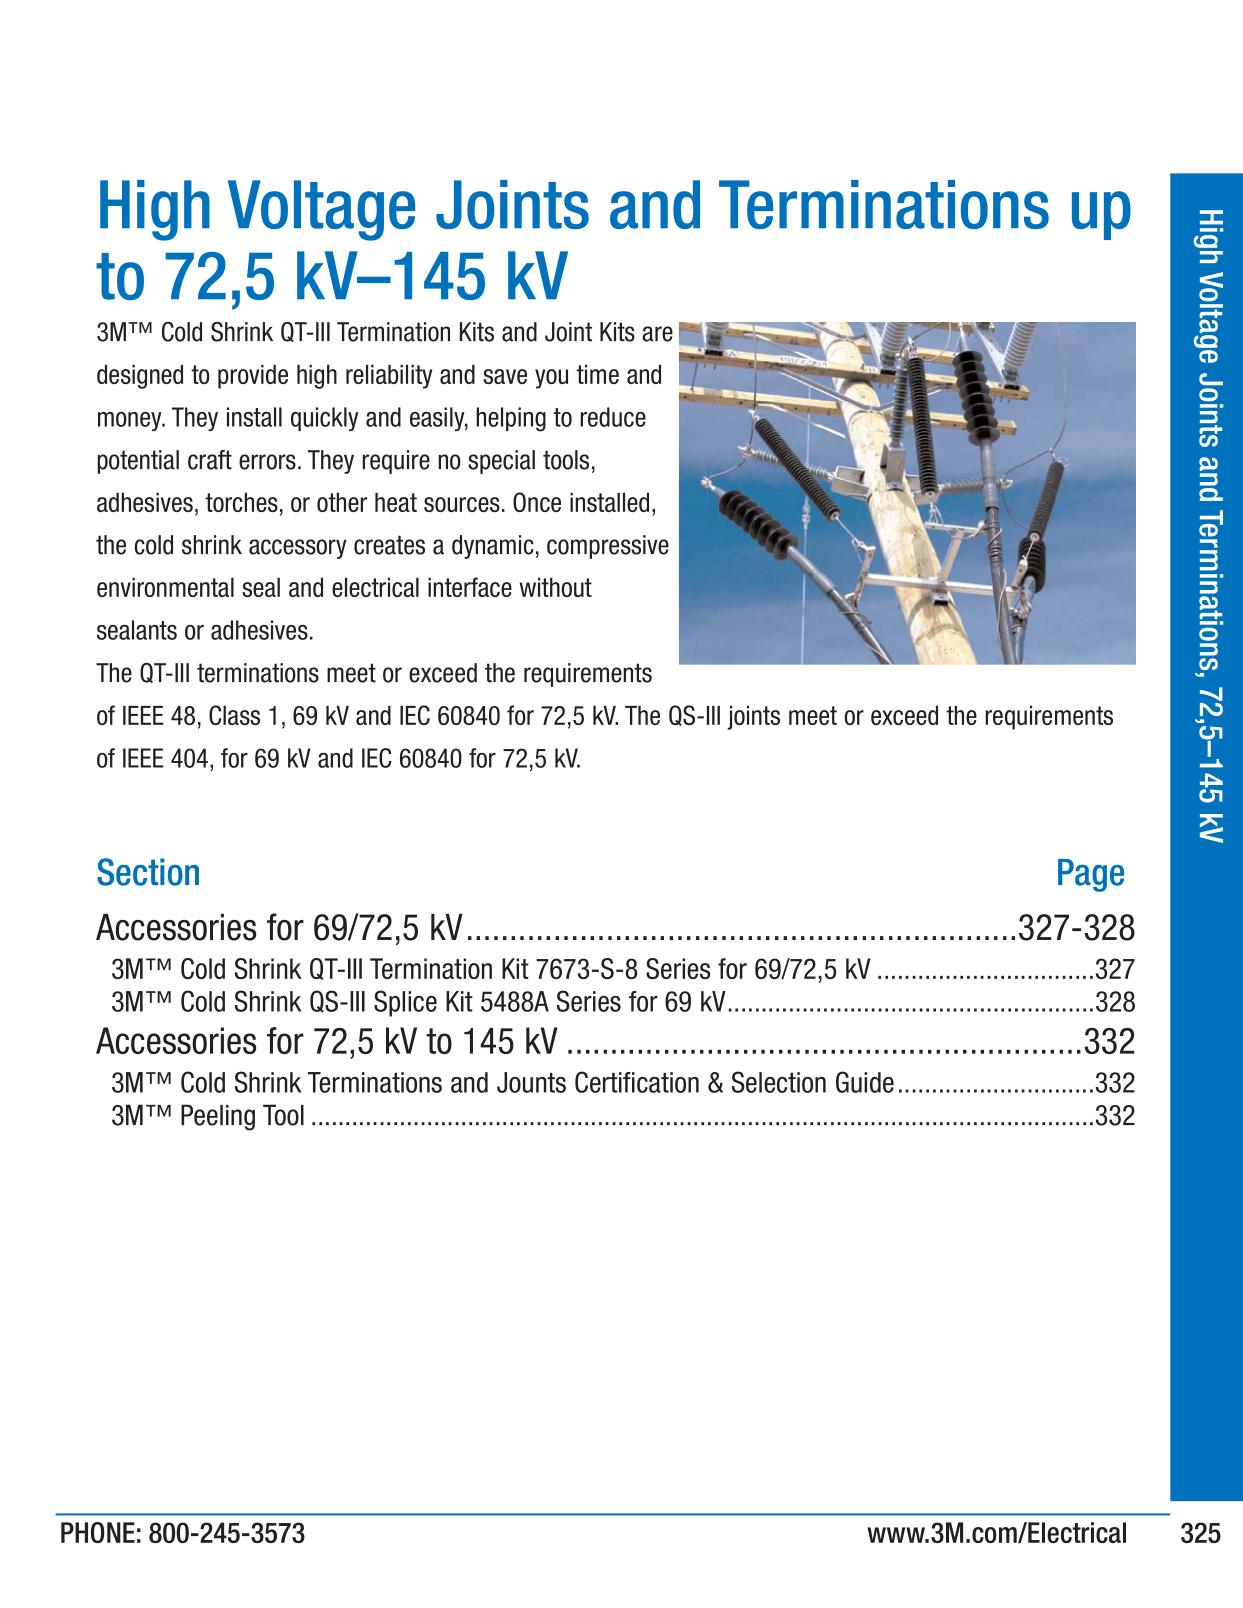 High Voltage Joints and Terminations, 72, 5 145 kV - 3M Big Deal ...